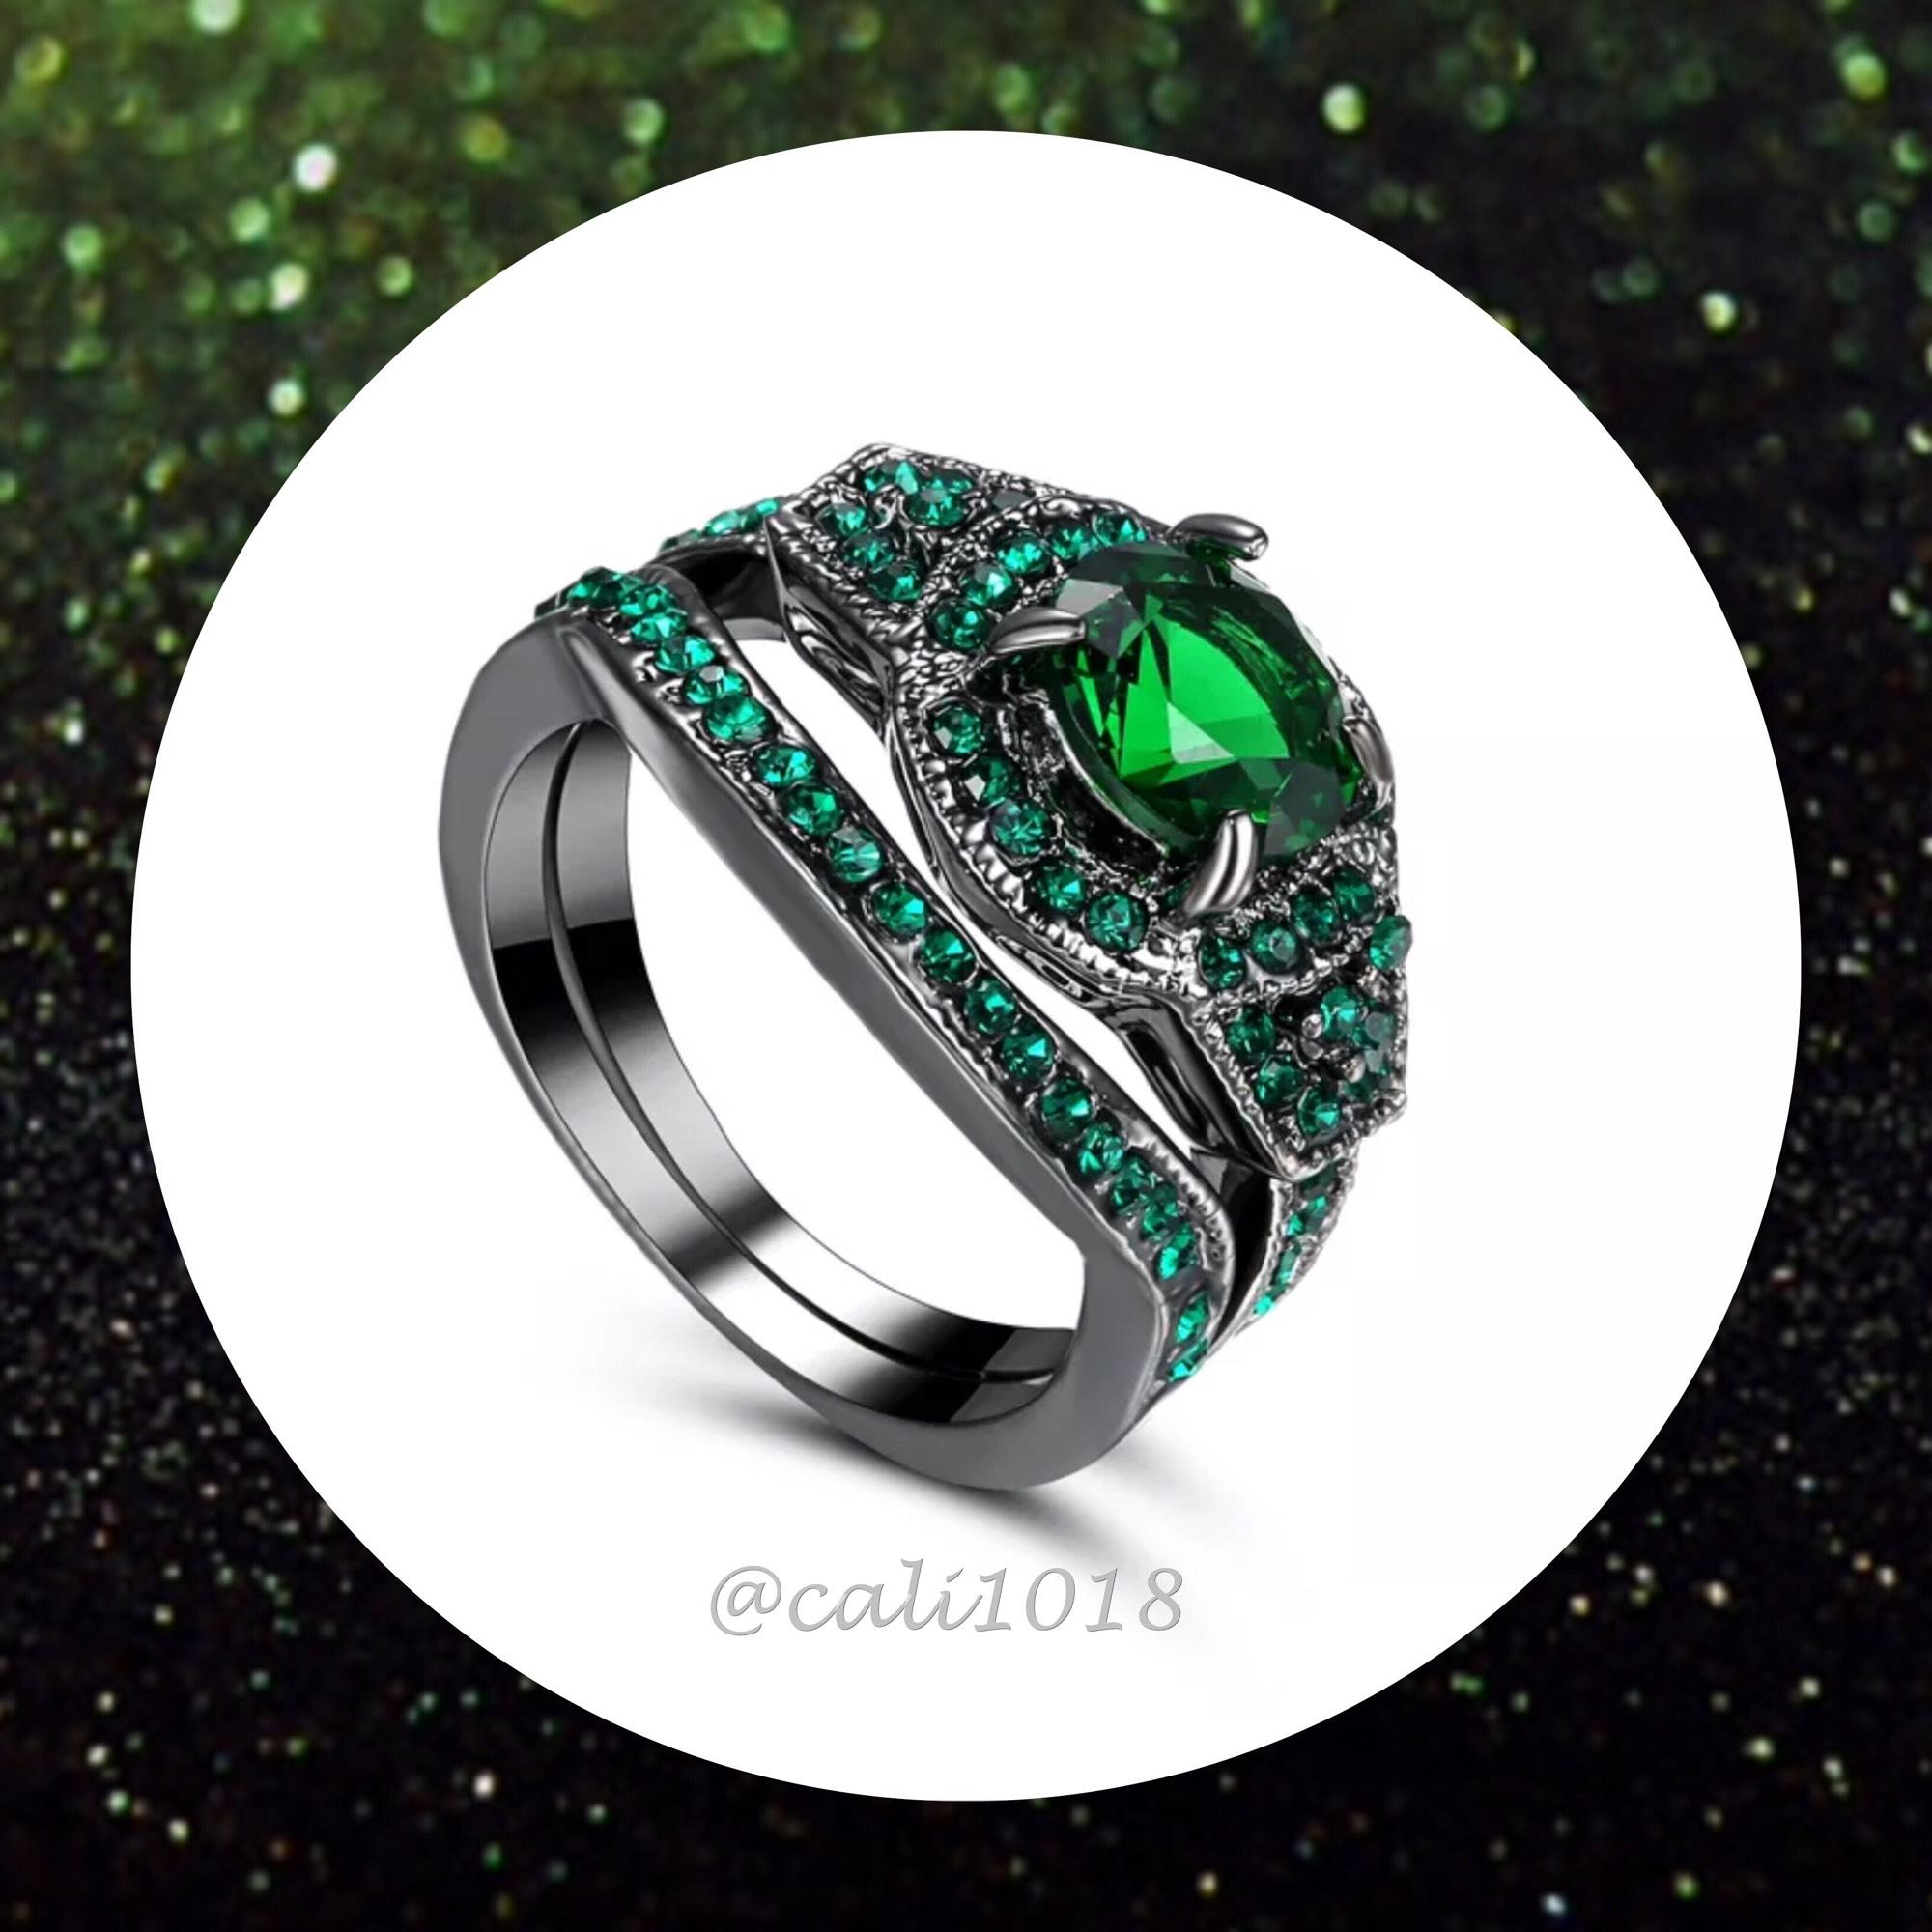 2pc emerald green and black gold filled wedding ring set sz 7 70